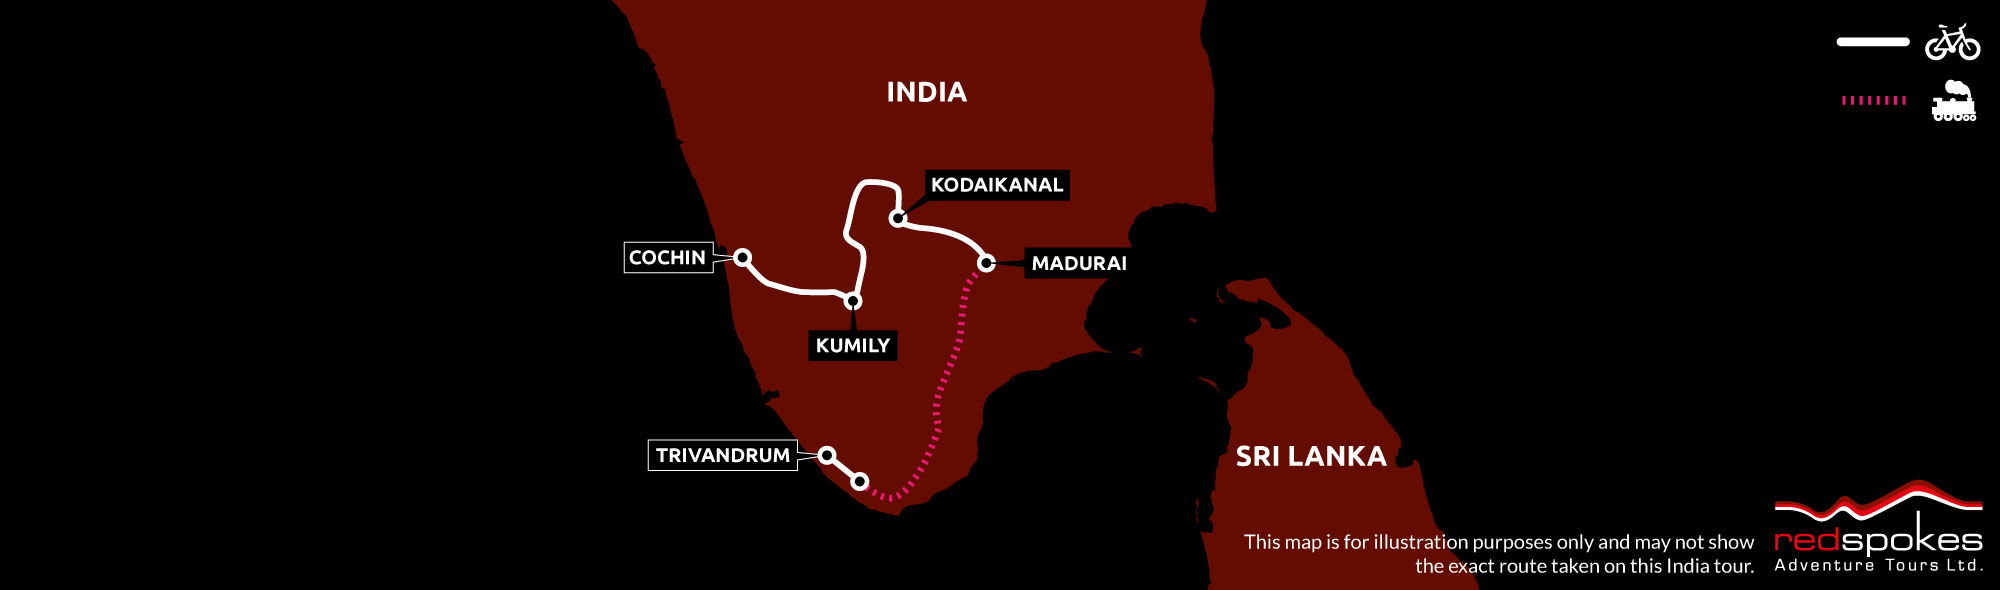 Example route for this India cycling holiday